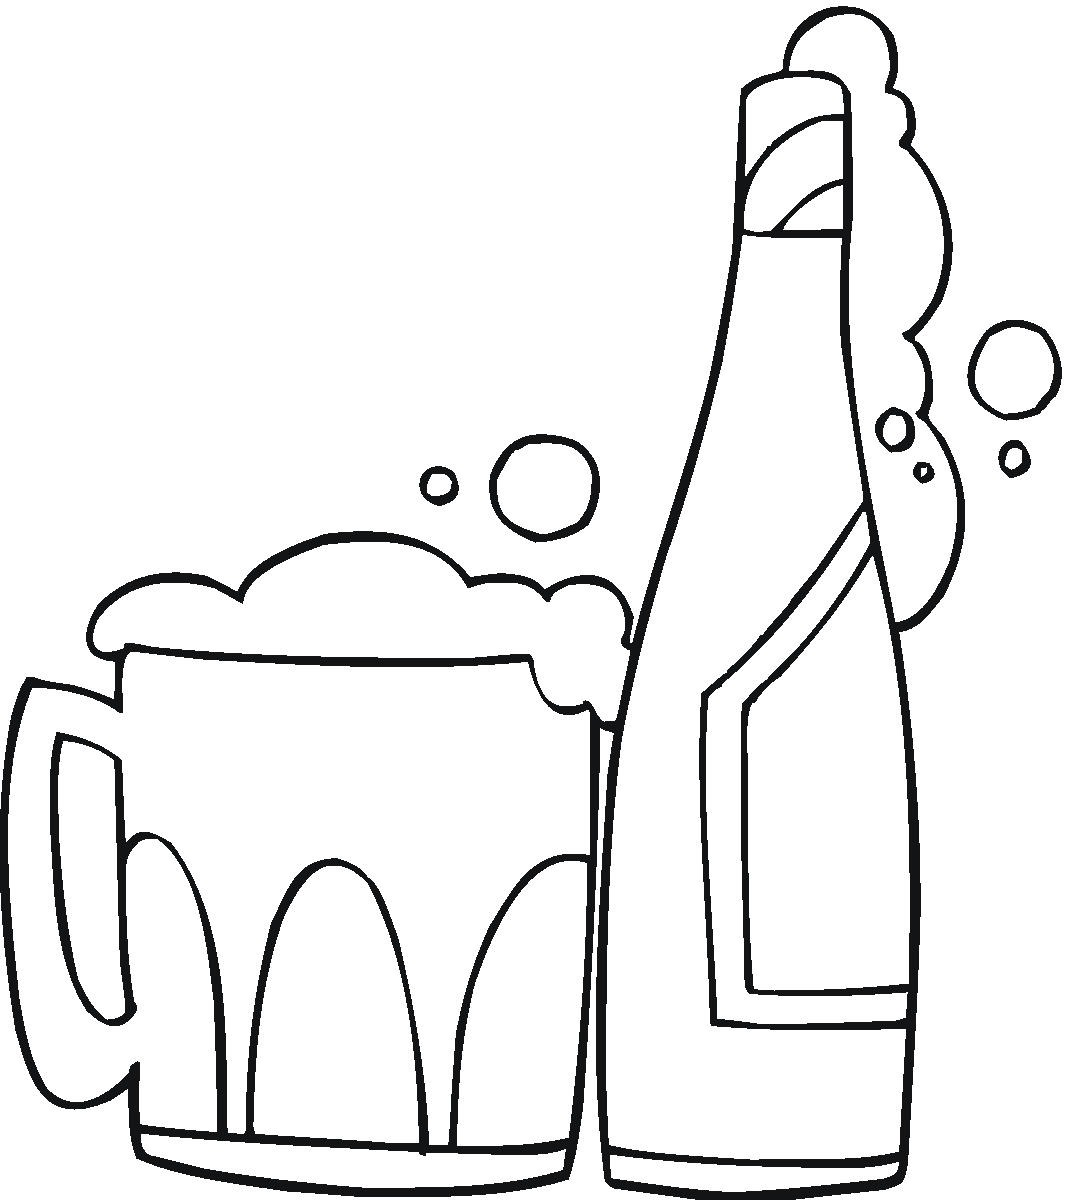 Black and white alcohol clipart svg library library Free Alcohol Clipart Black And White, Download Free Clip Art, Free ... svg library library